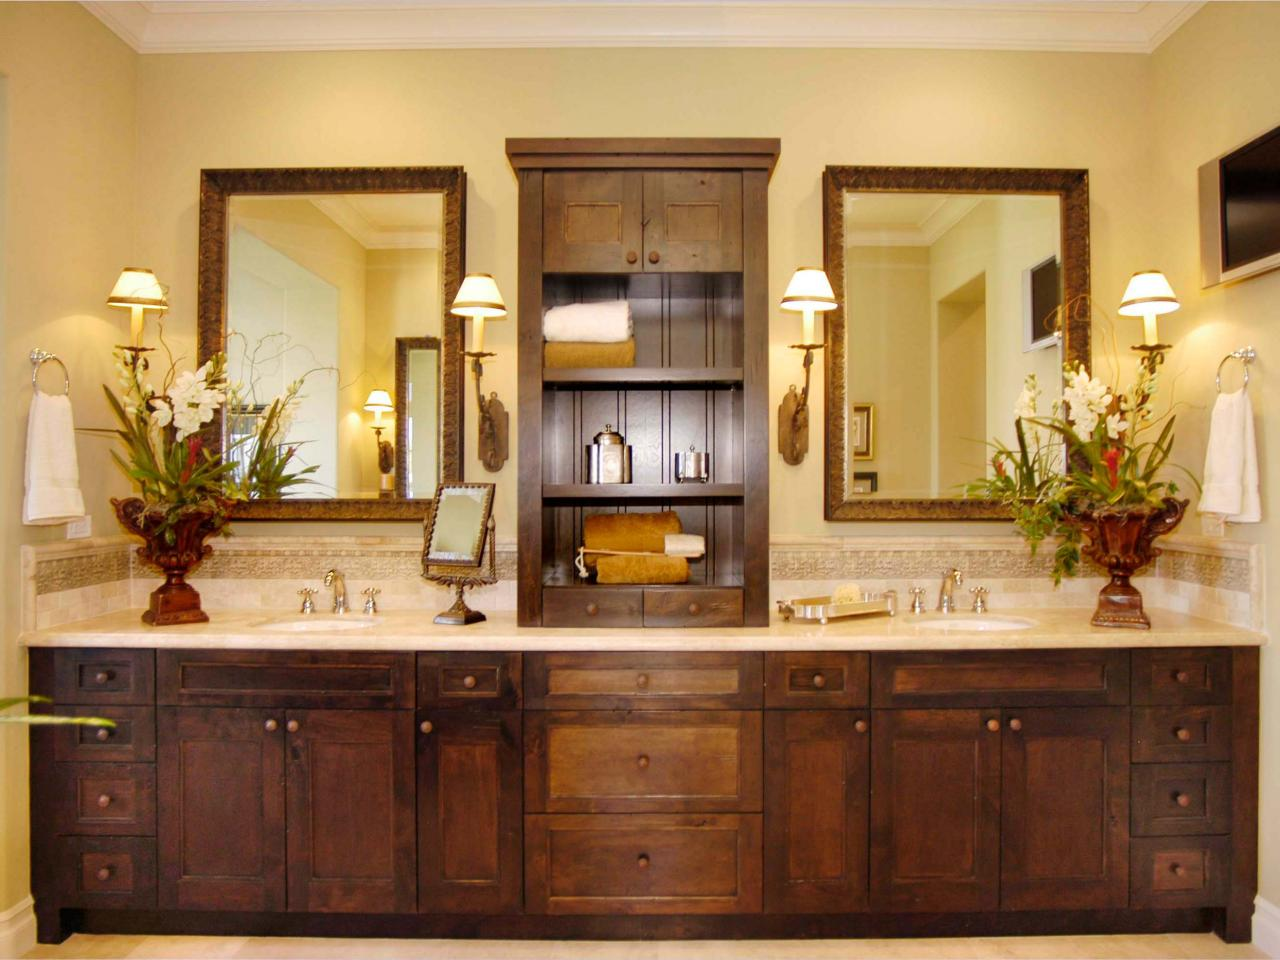 craftsman bathroom photos hgtv. Black Bedroom Furniture Sets. Home Design Ideas